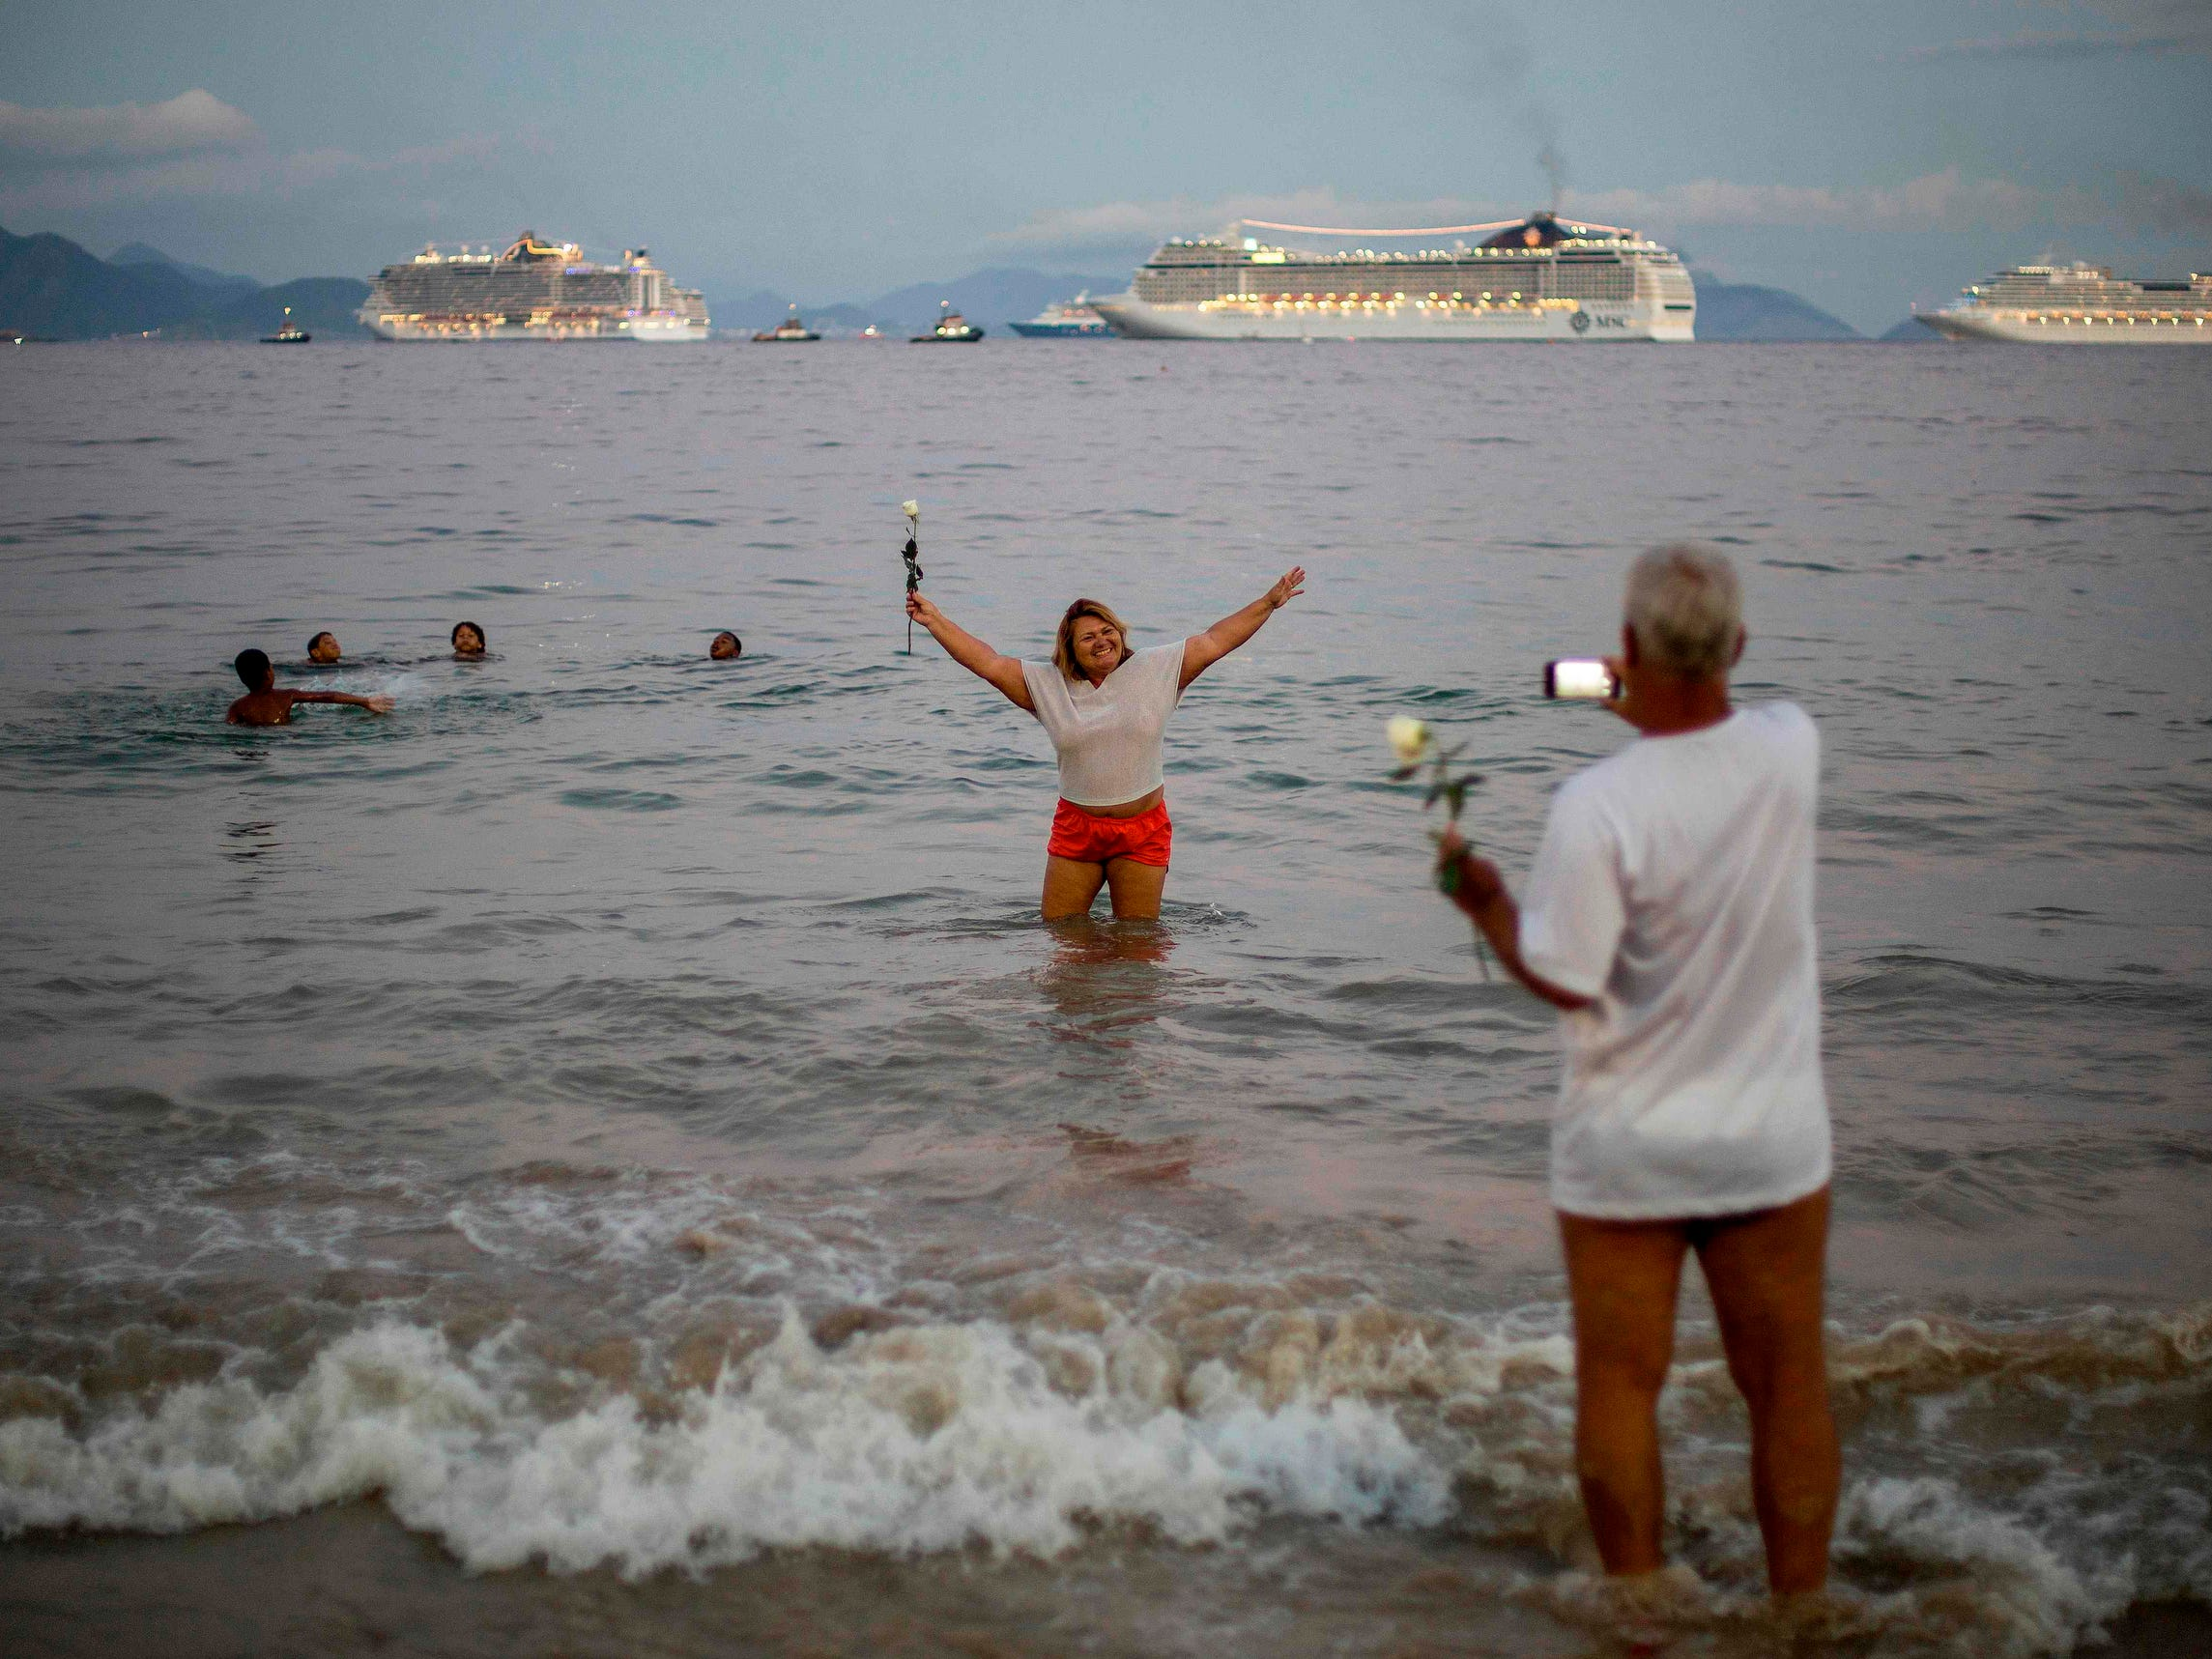 Backdropped by cruises, a woman poses for pictures on the shore of Copacabana Beach in Rio de Janeiro, Brazil, on New Year's Eve.